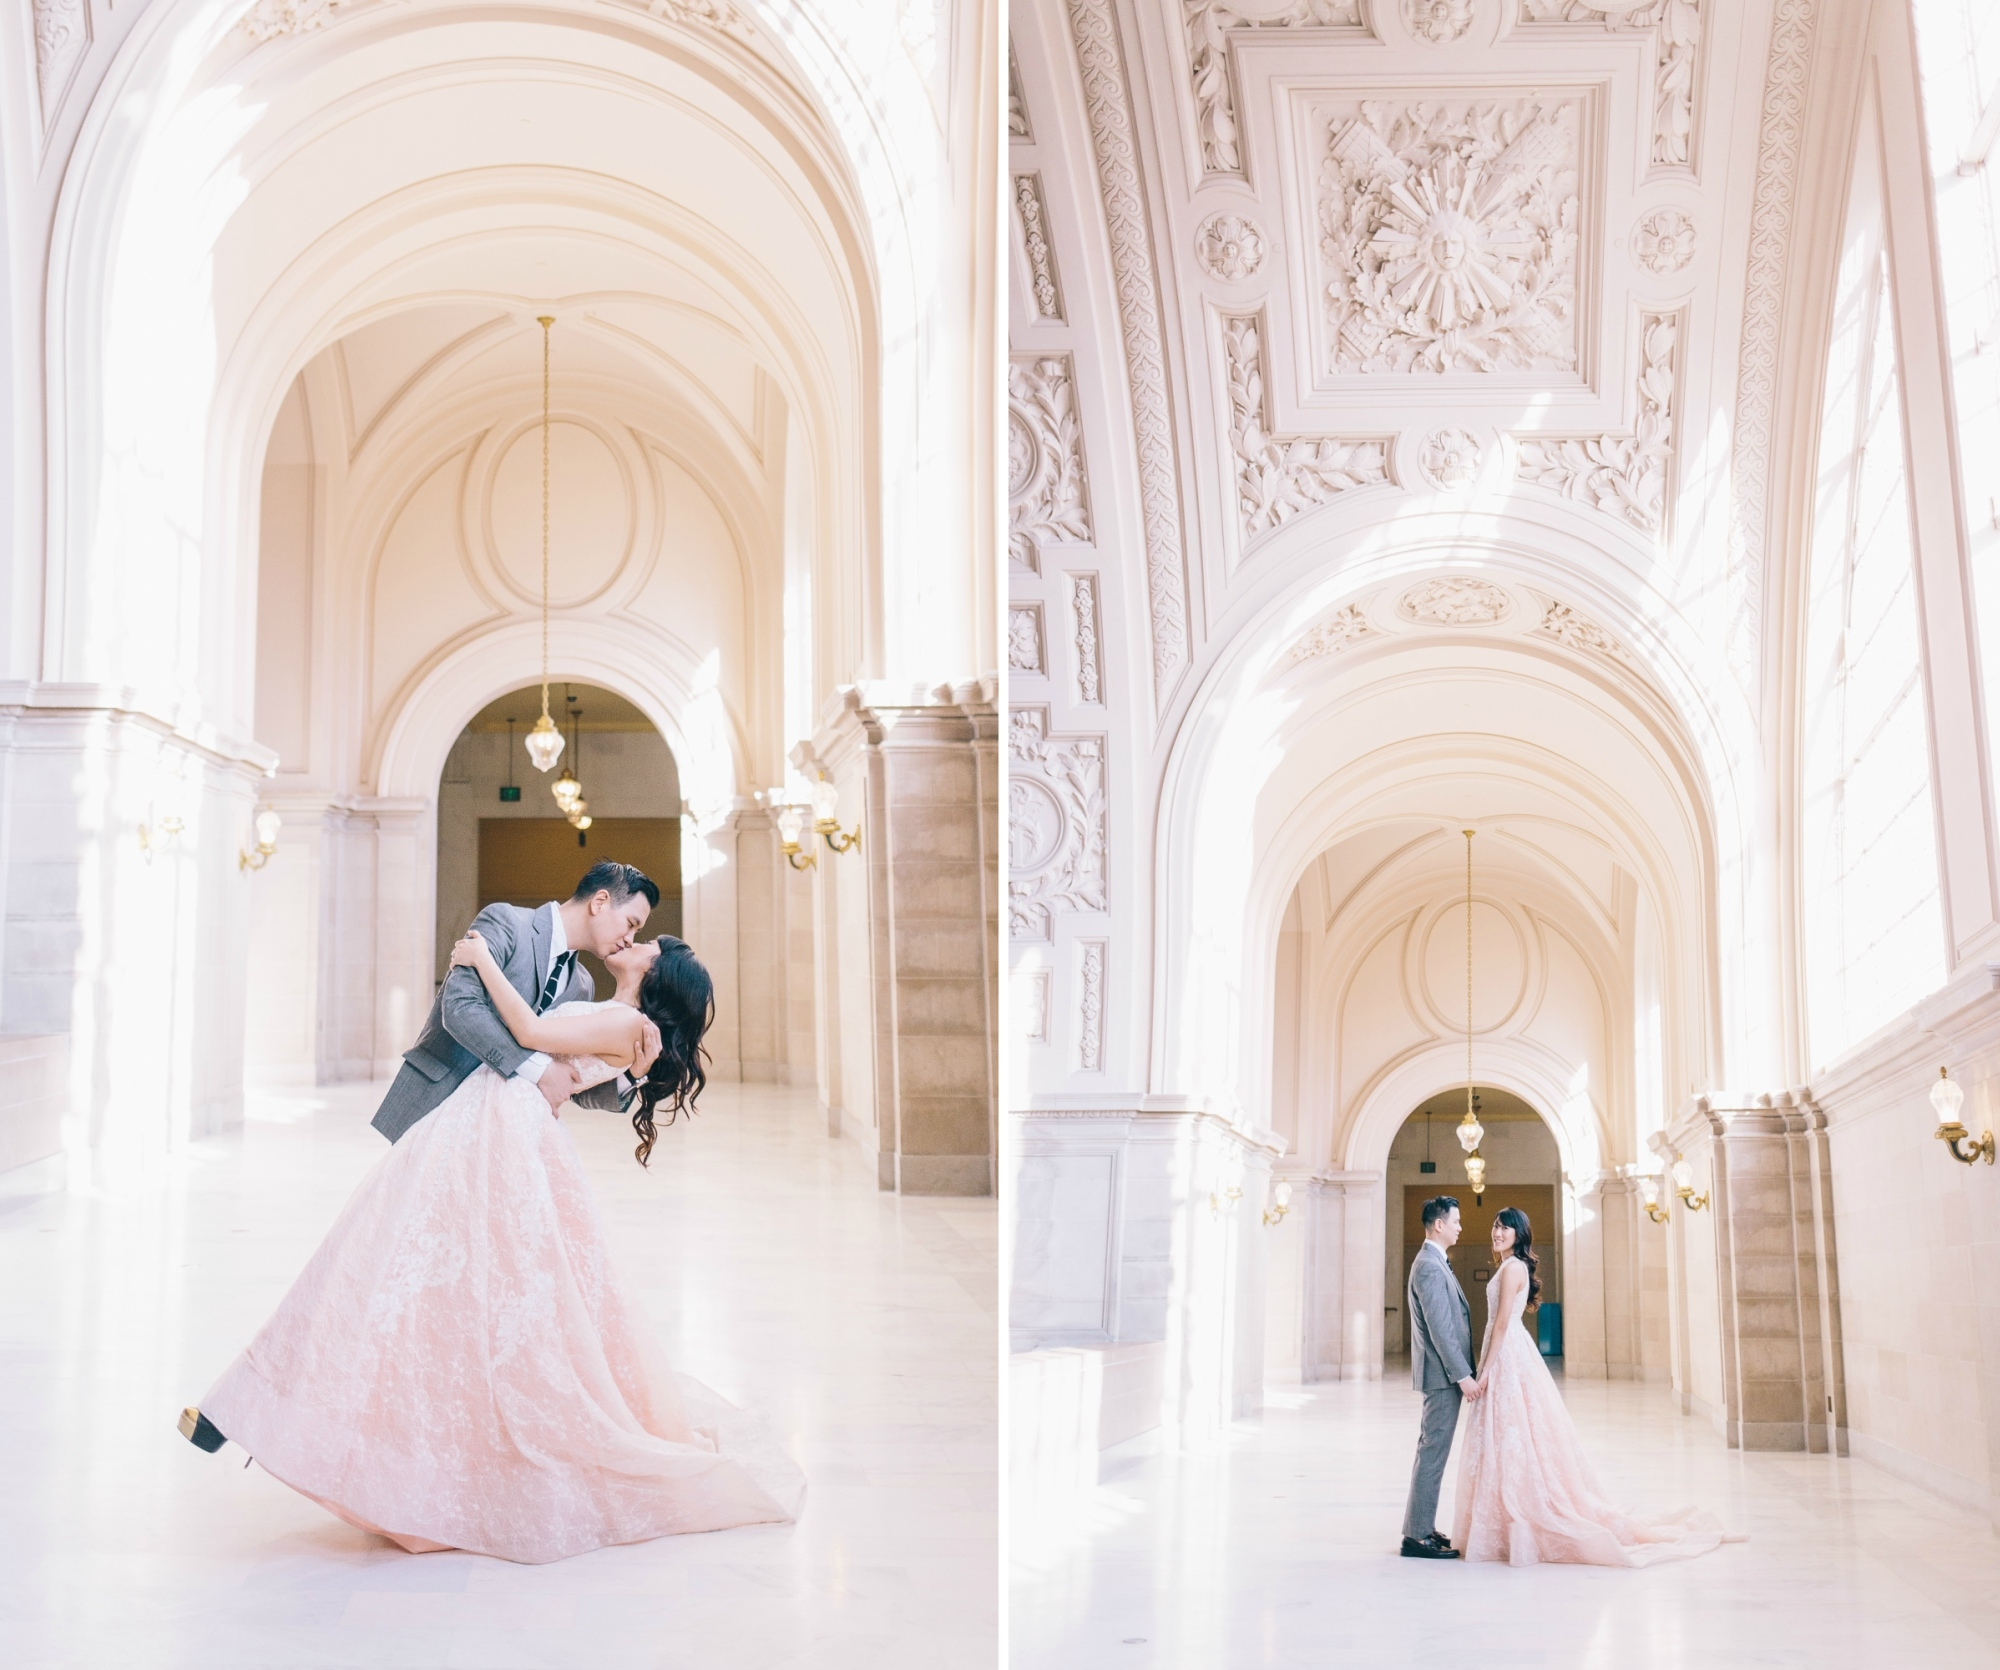 Pre-Wedding Photos in San Francisco by JBJ Pictures Pre-Wedding Photographer, Engagement Session and Wedding Photography in Napa, Sonoma, SF Bay Area (23).jpg